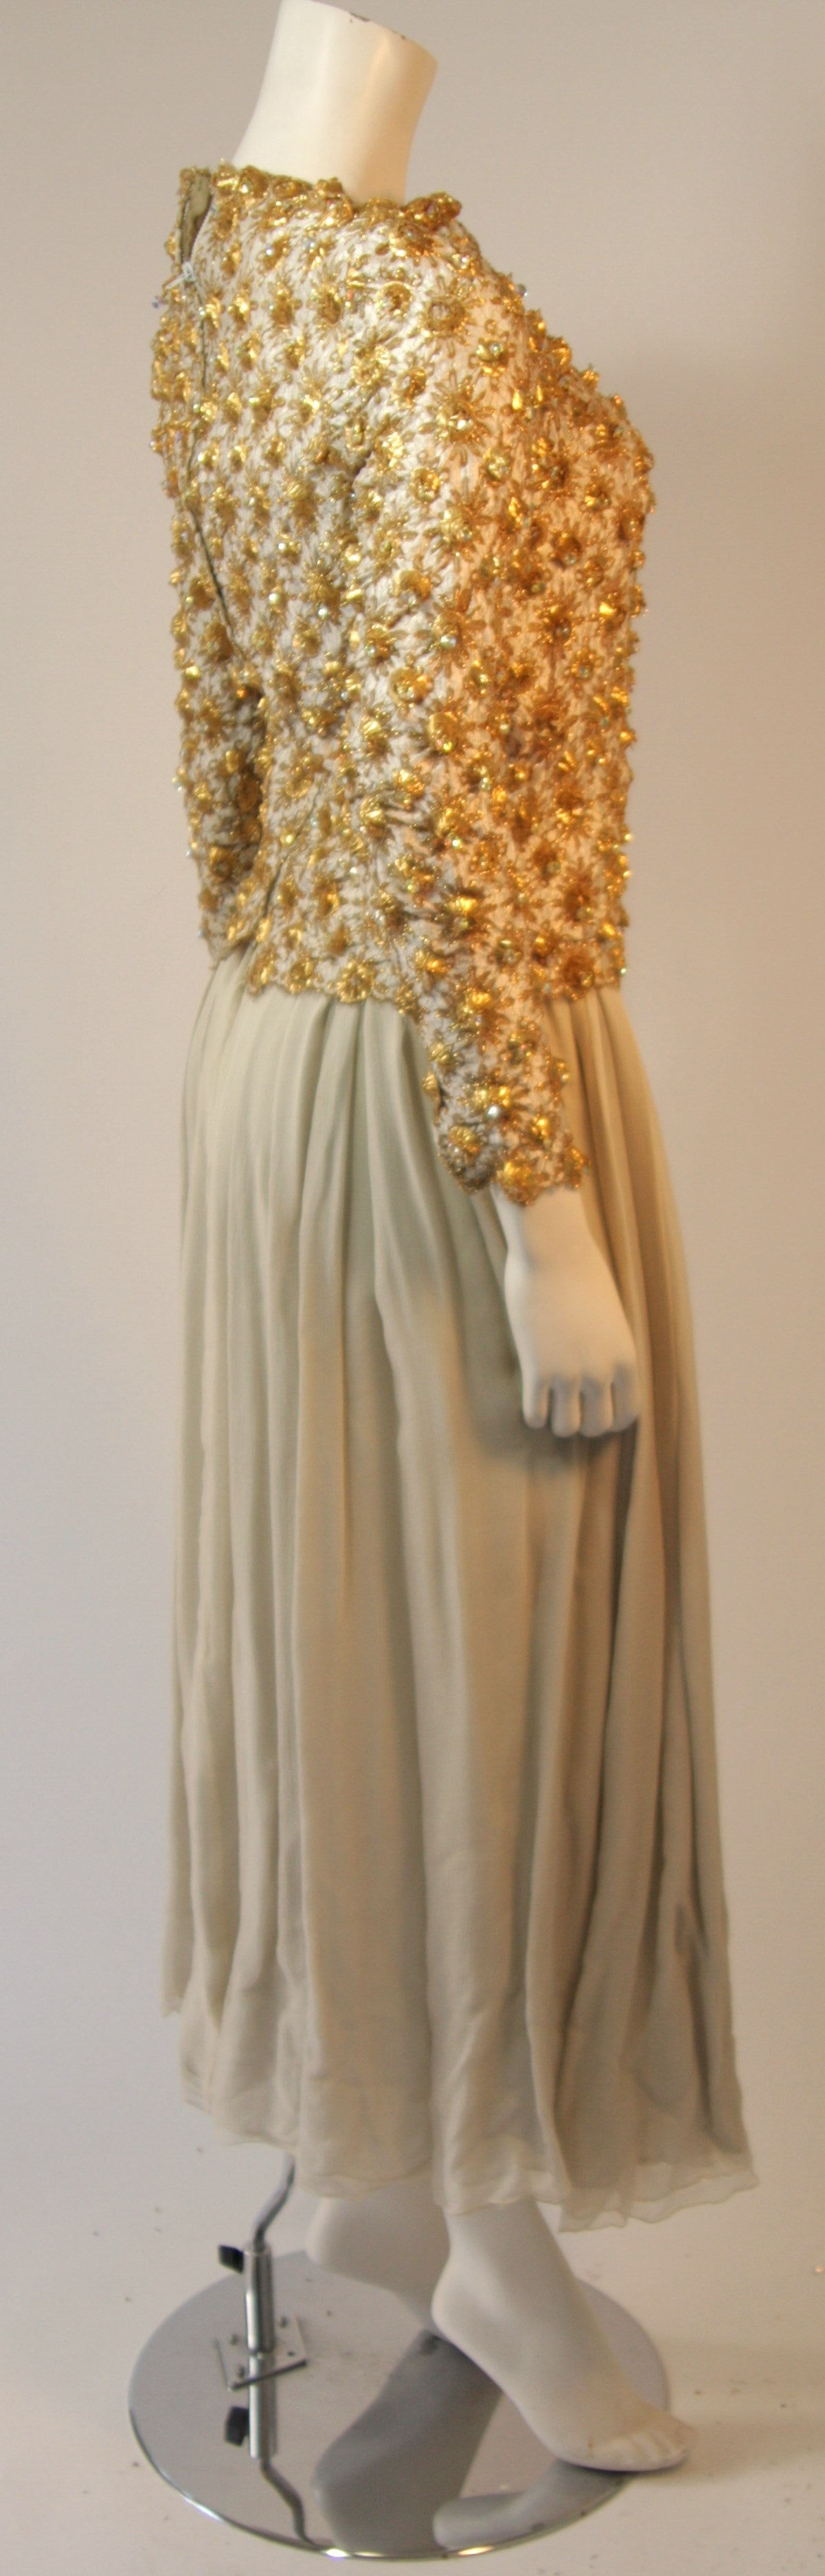 Gold and Chiffon Embellished 2 Piece Gown 5